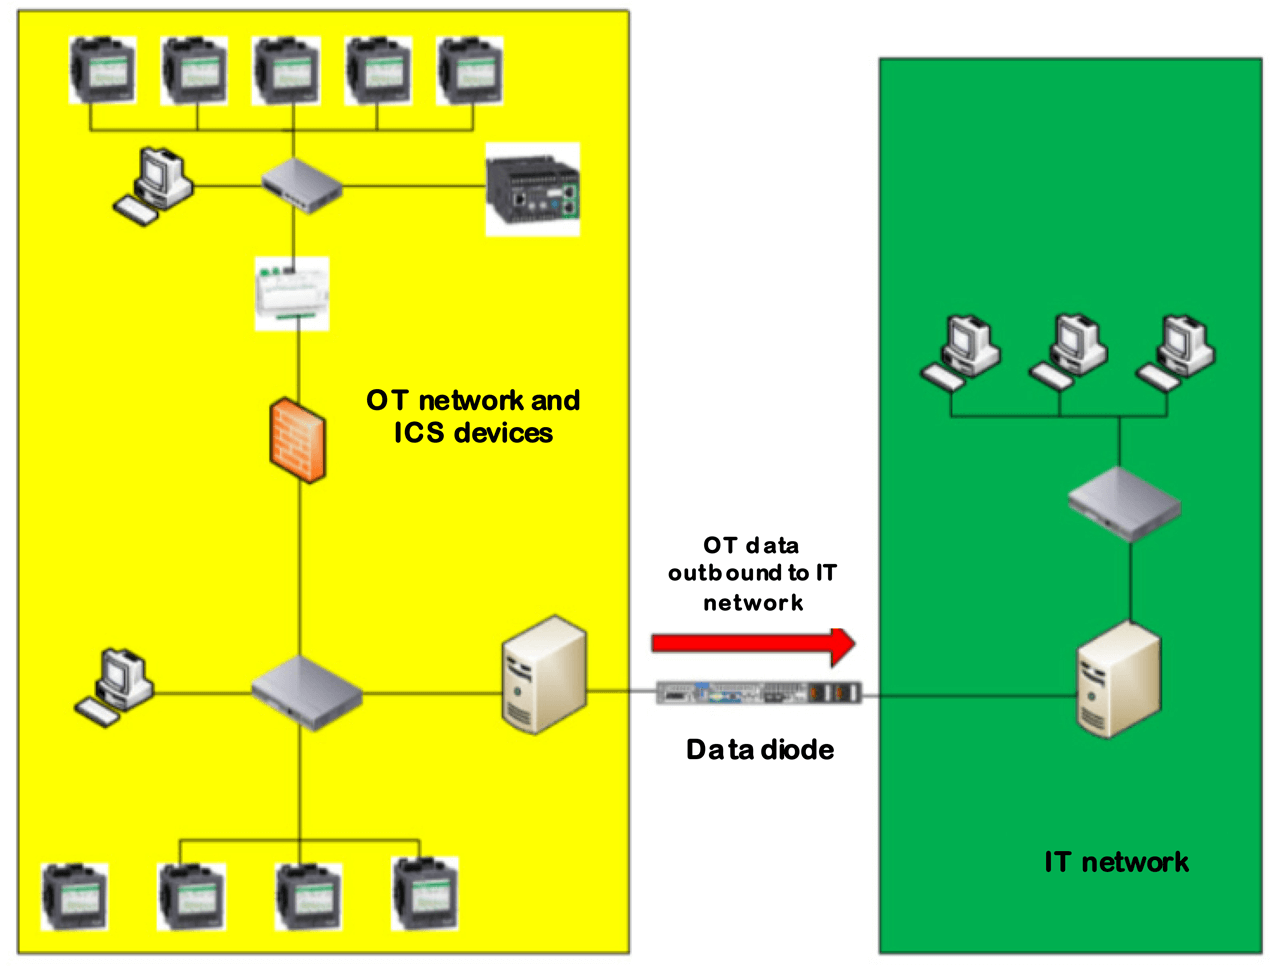 Example of a Data Diode placed between OT and IT networks.